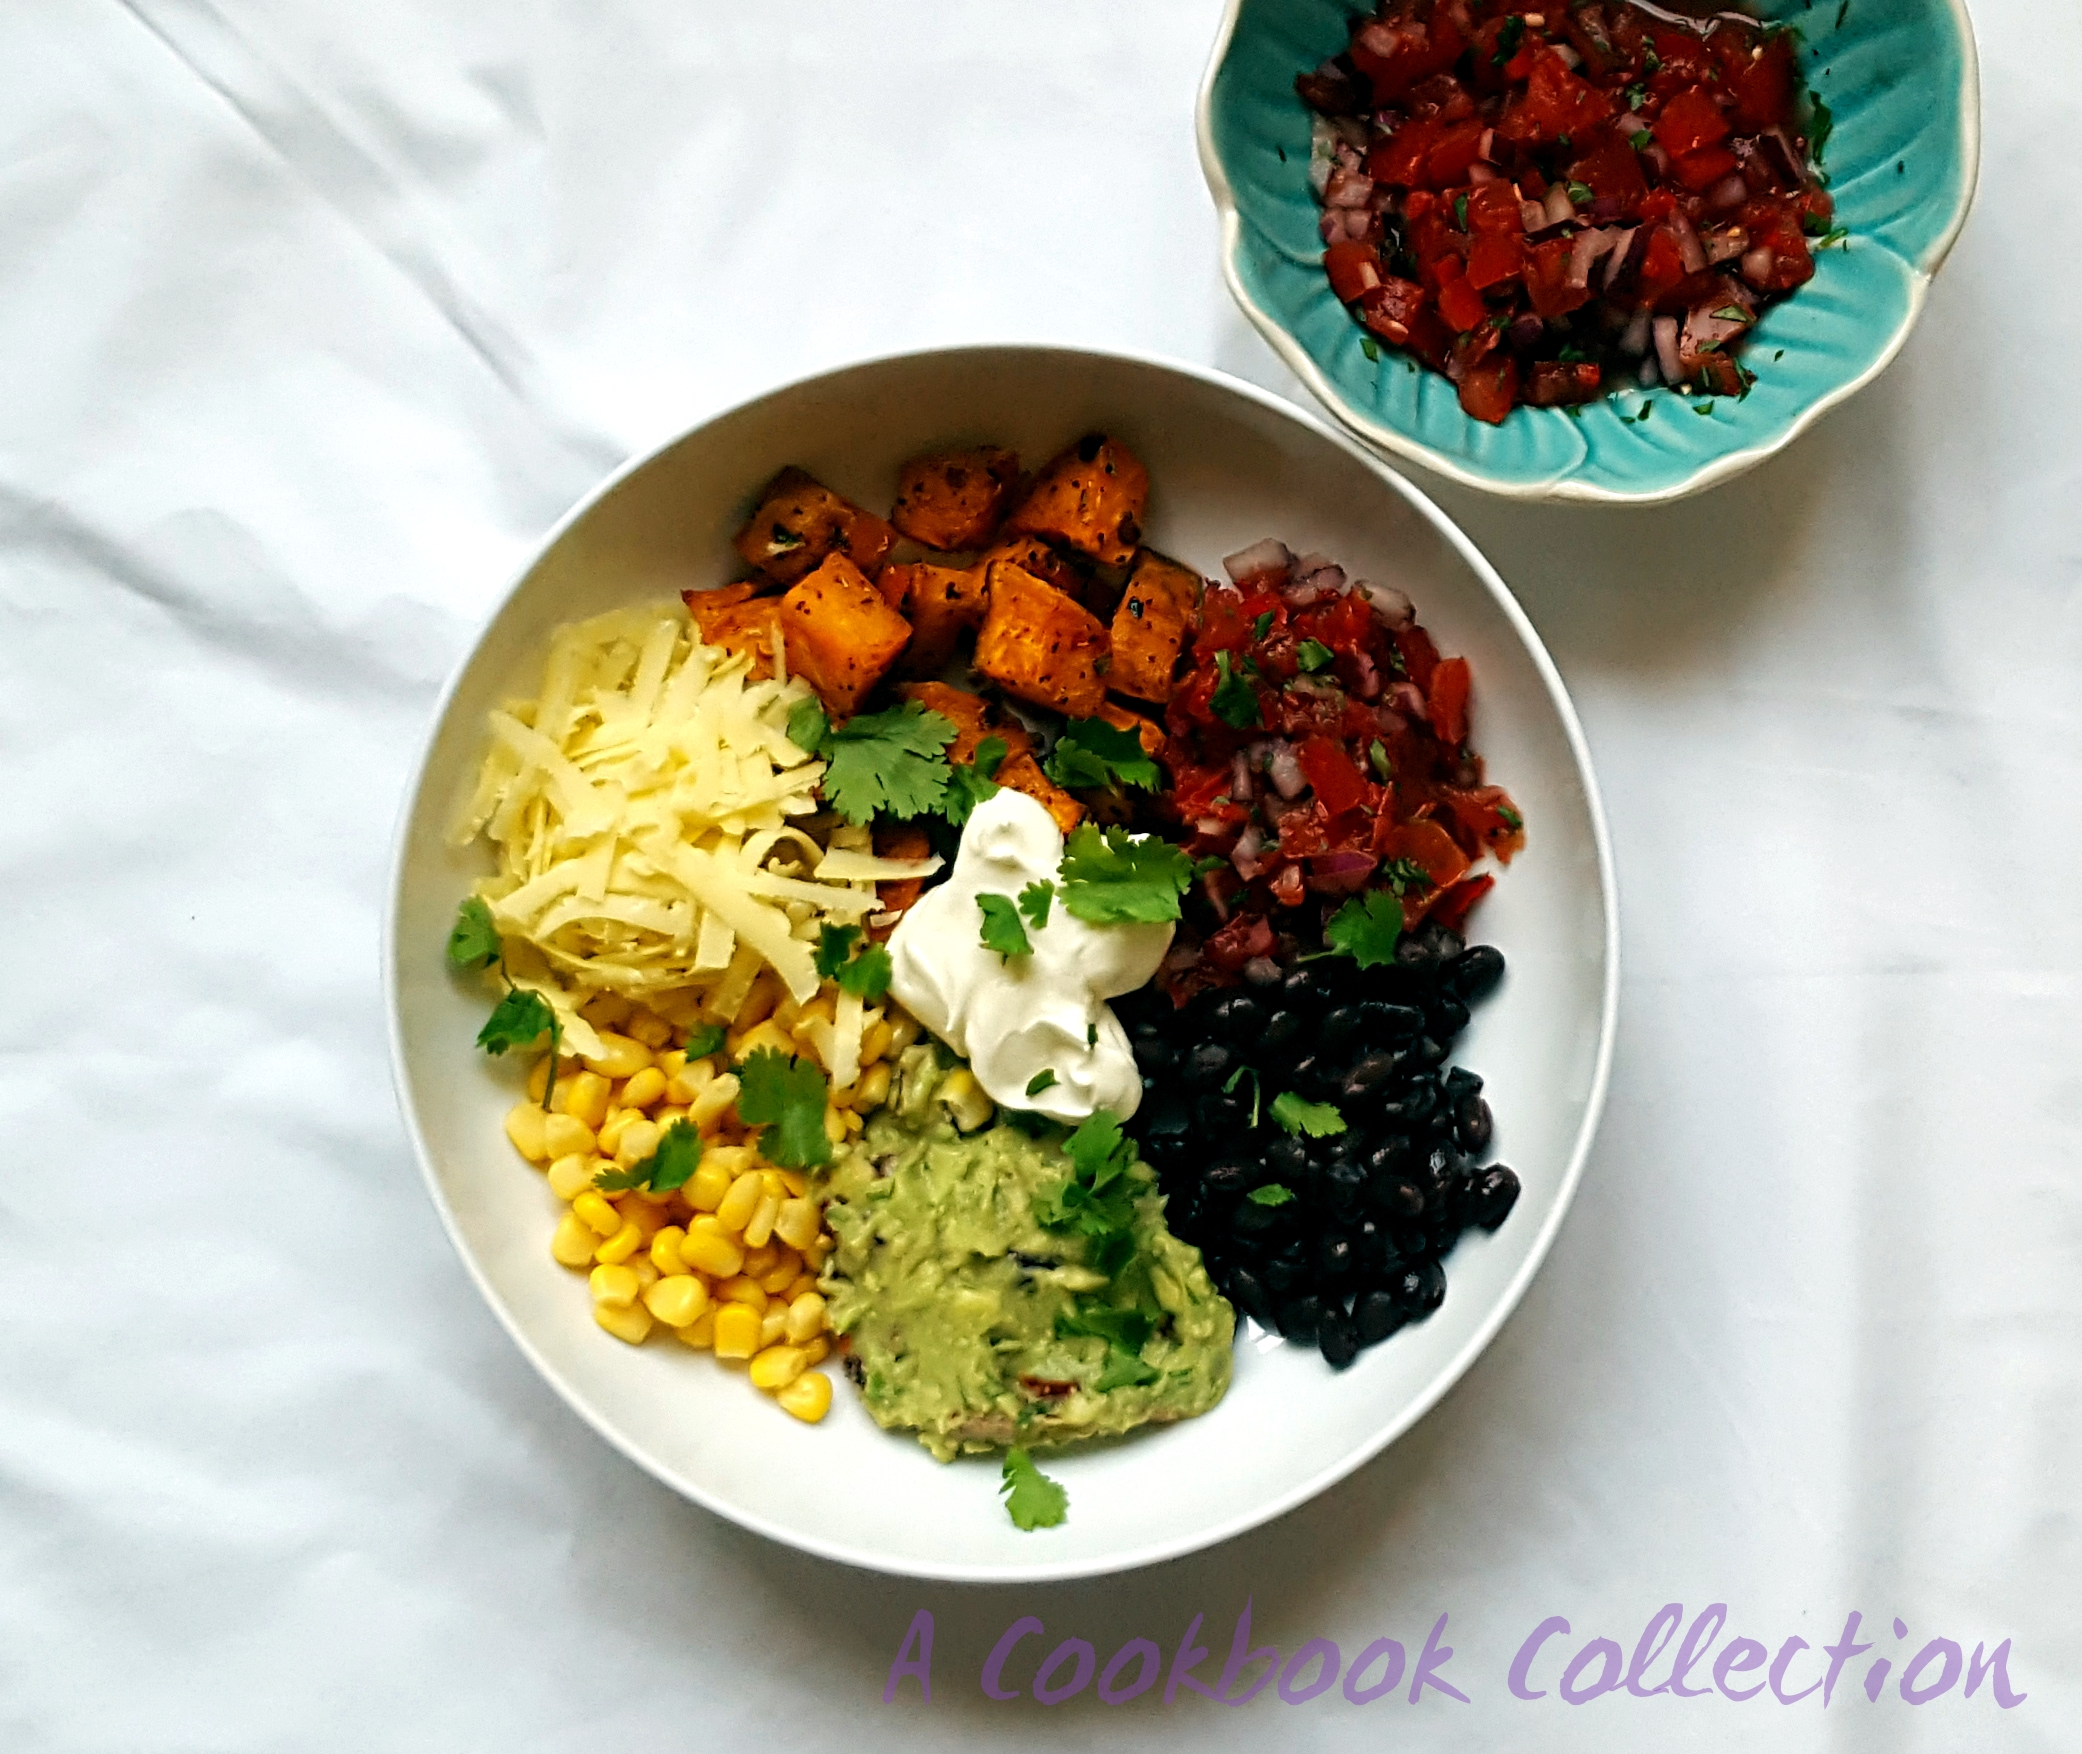 Mexican Sweet Potato and Black Bean Salad-A Cookbook Collection